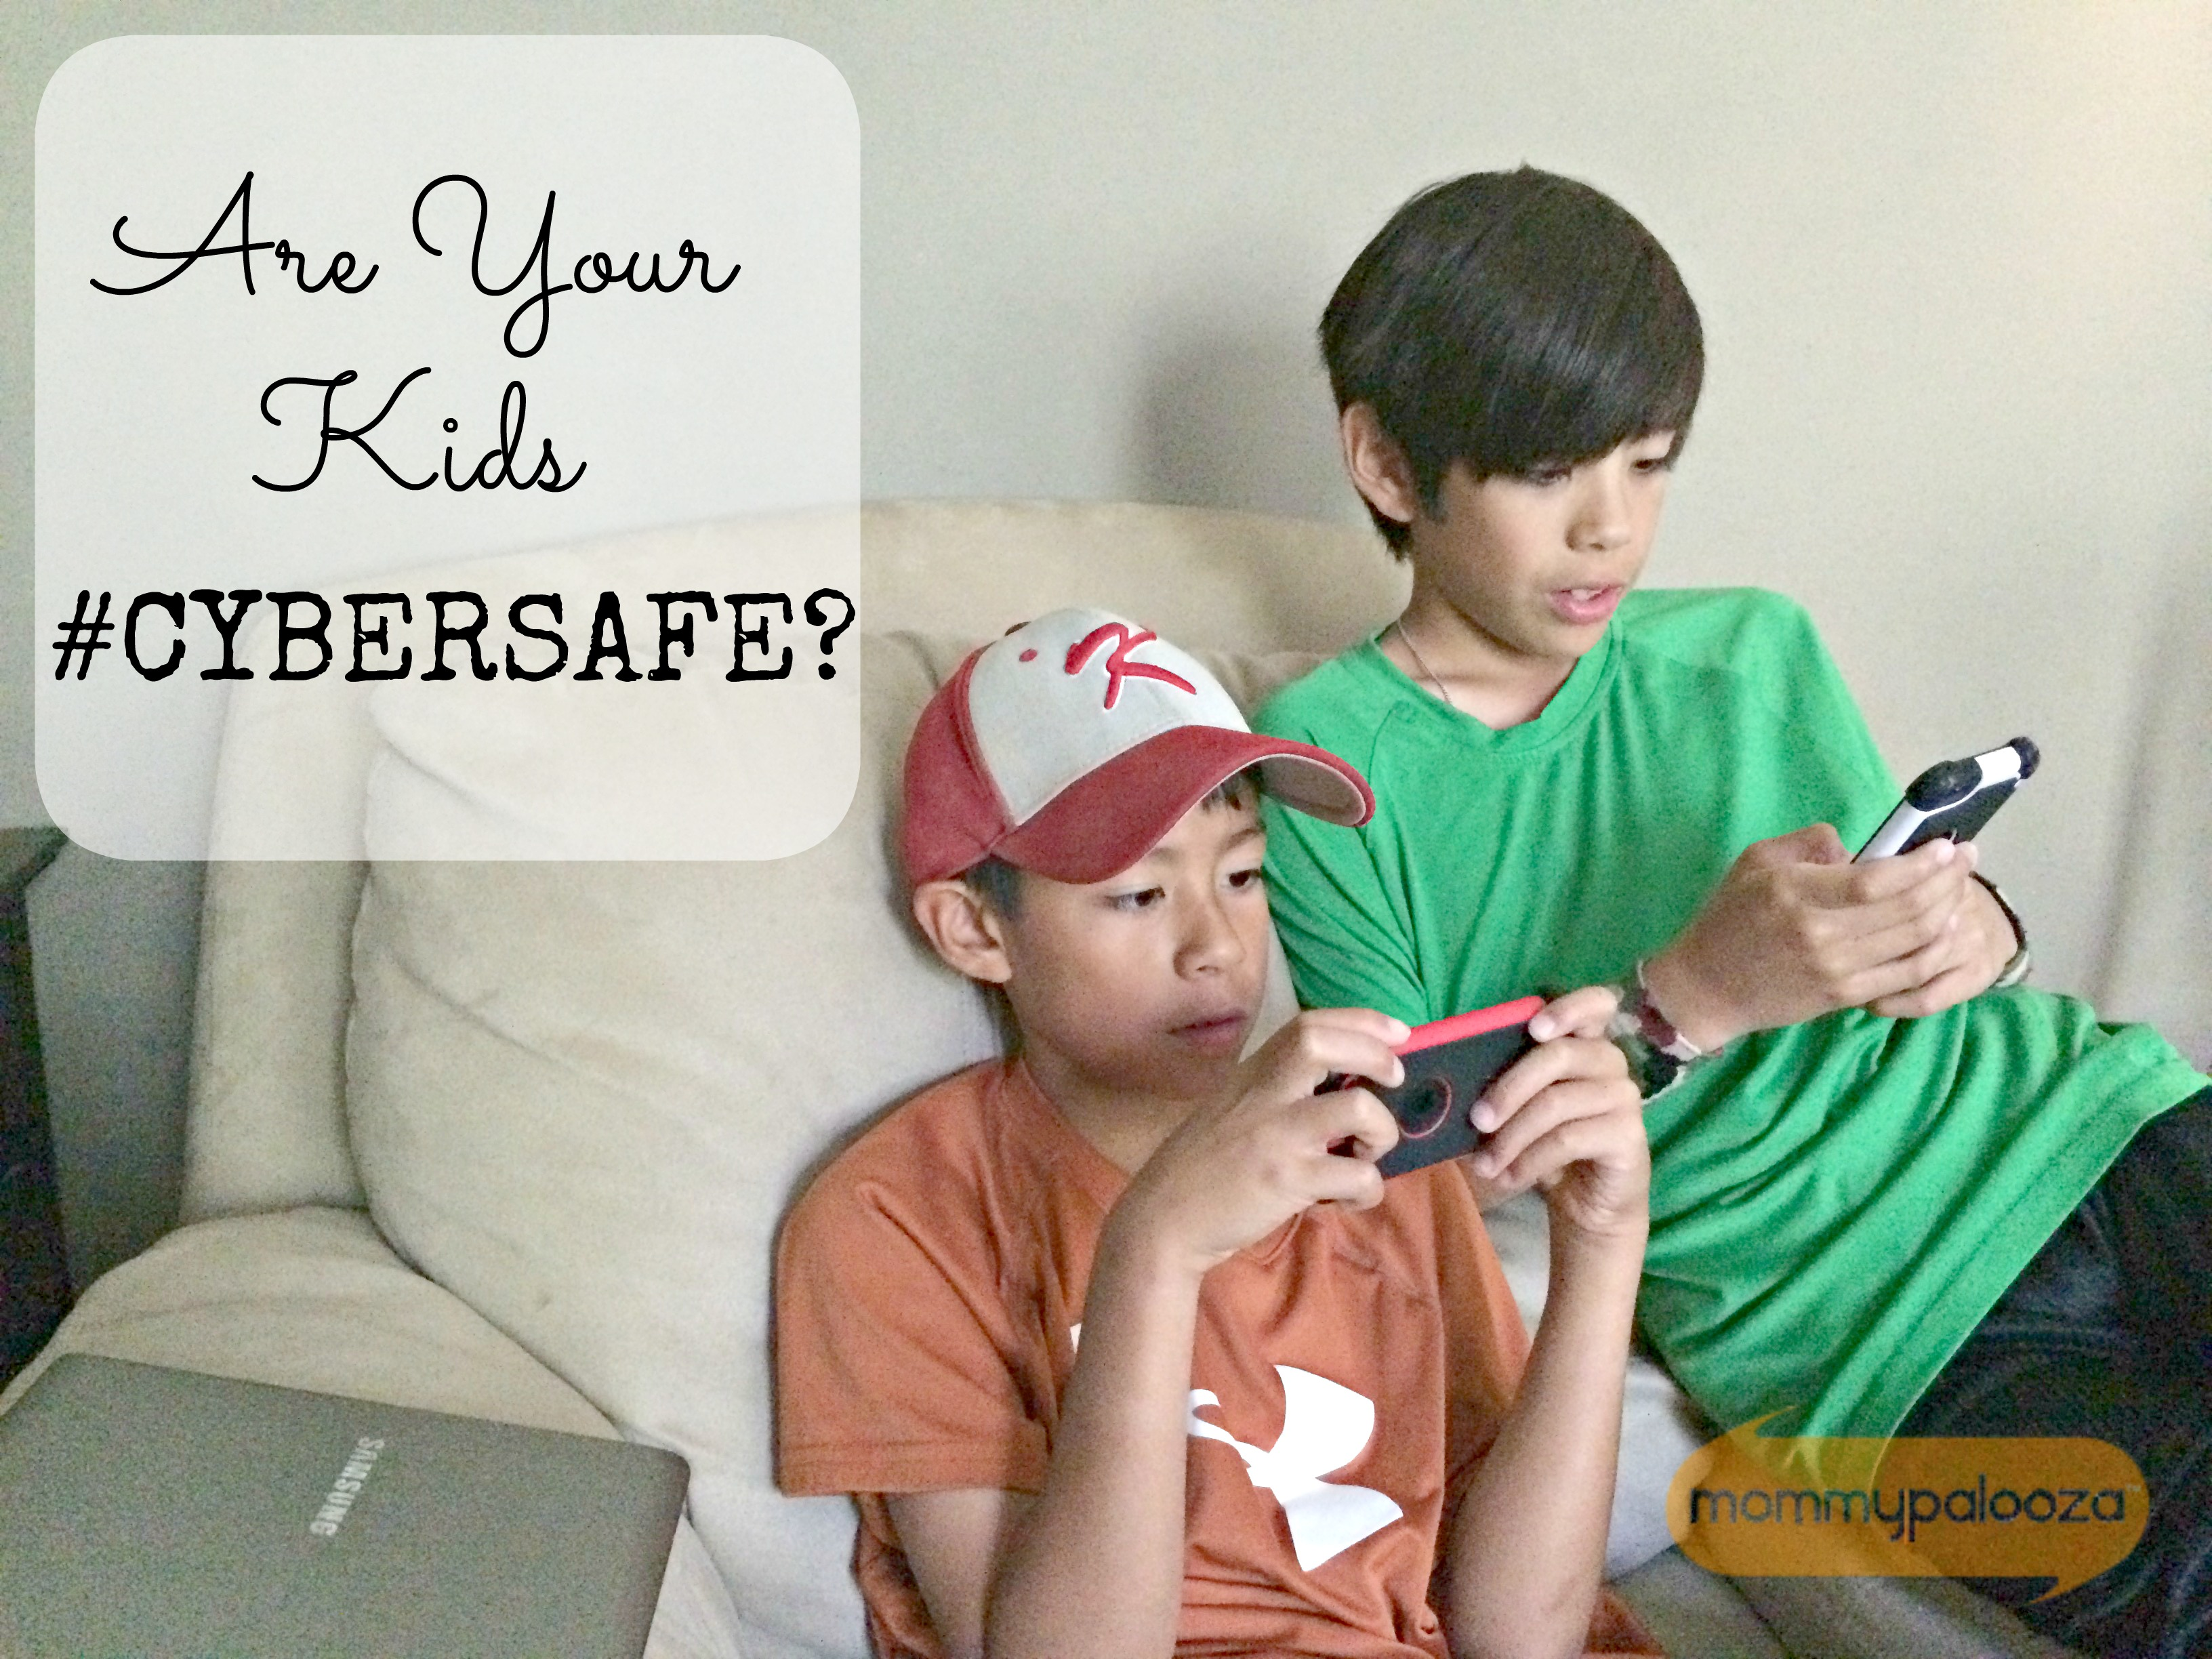 Keeping Up with What Your Kids Know about Social Media #CyberSafe